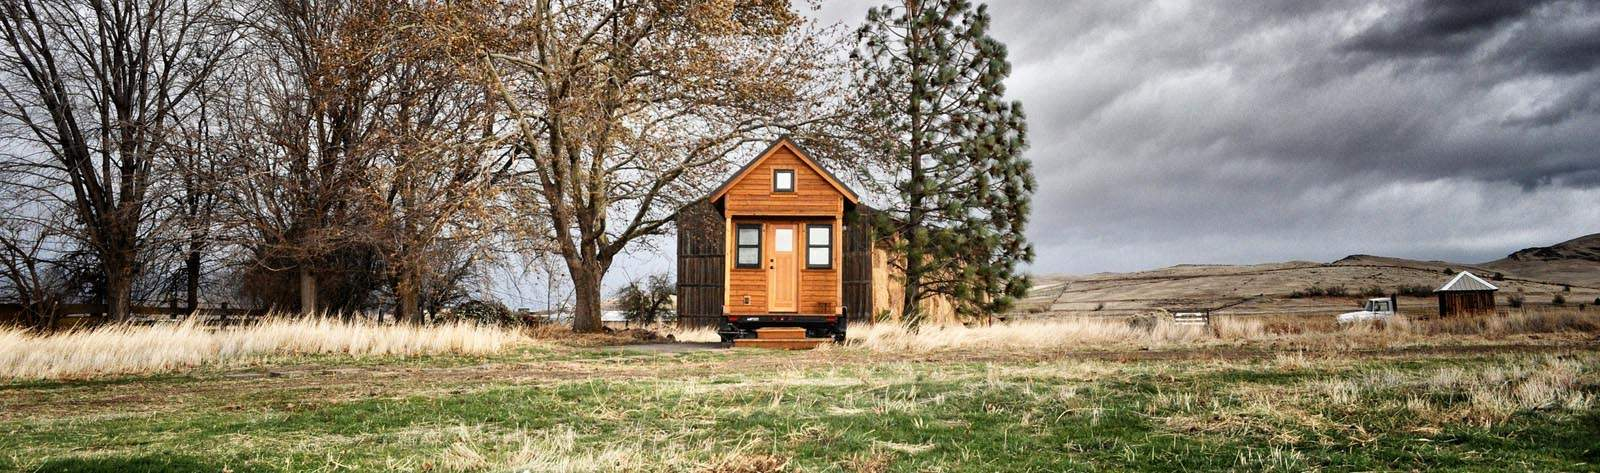 for sale renttiny house for us tiny houses for sale and for rent